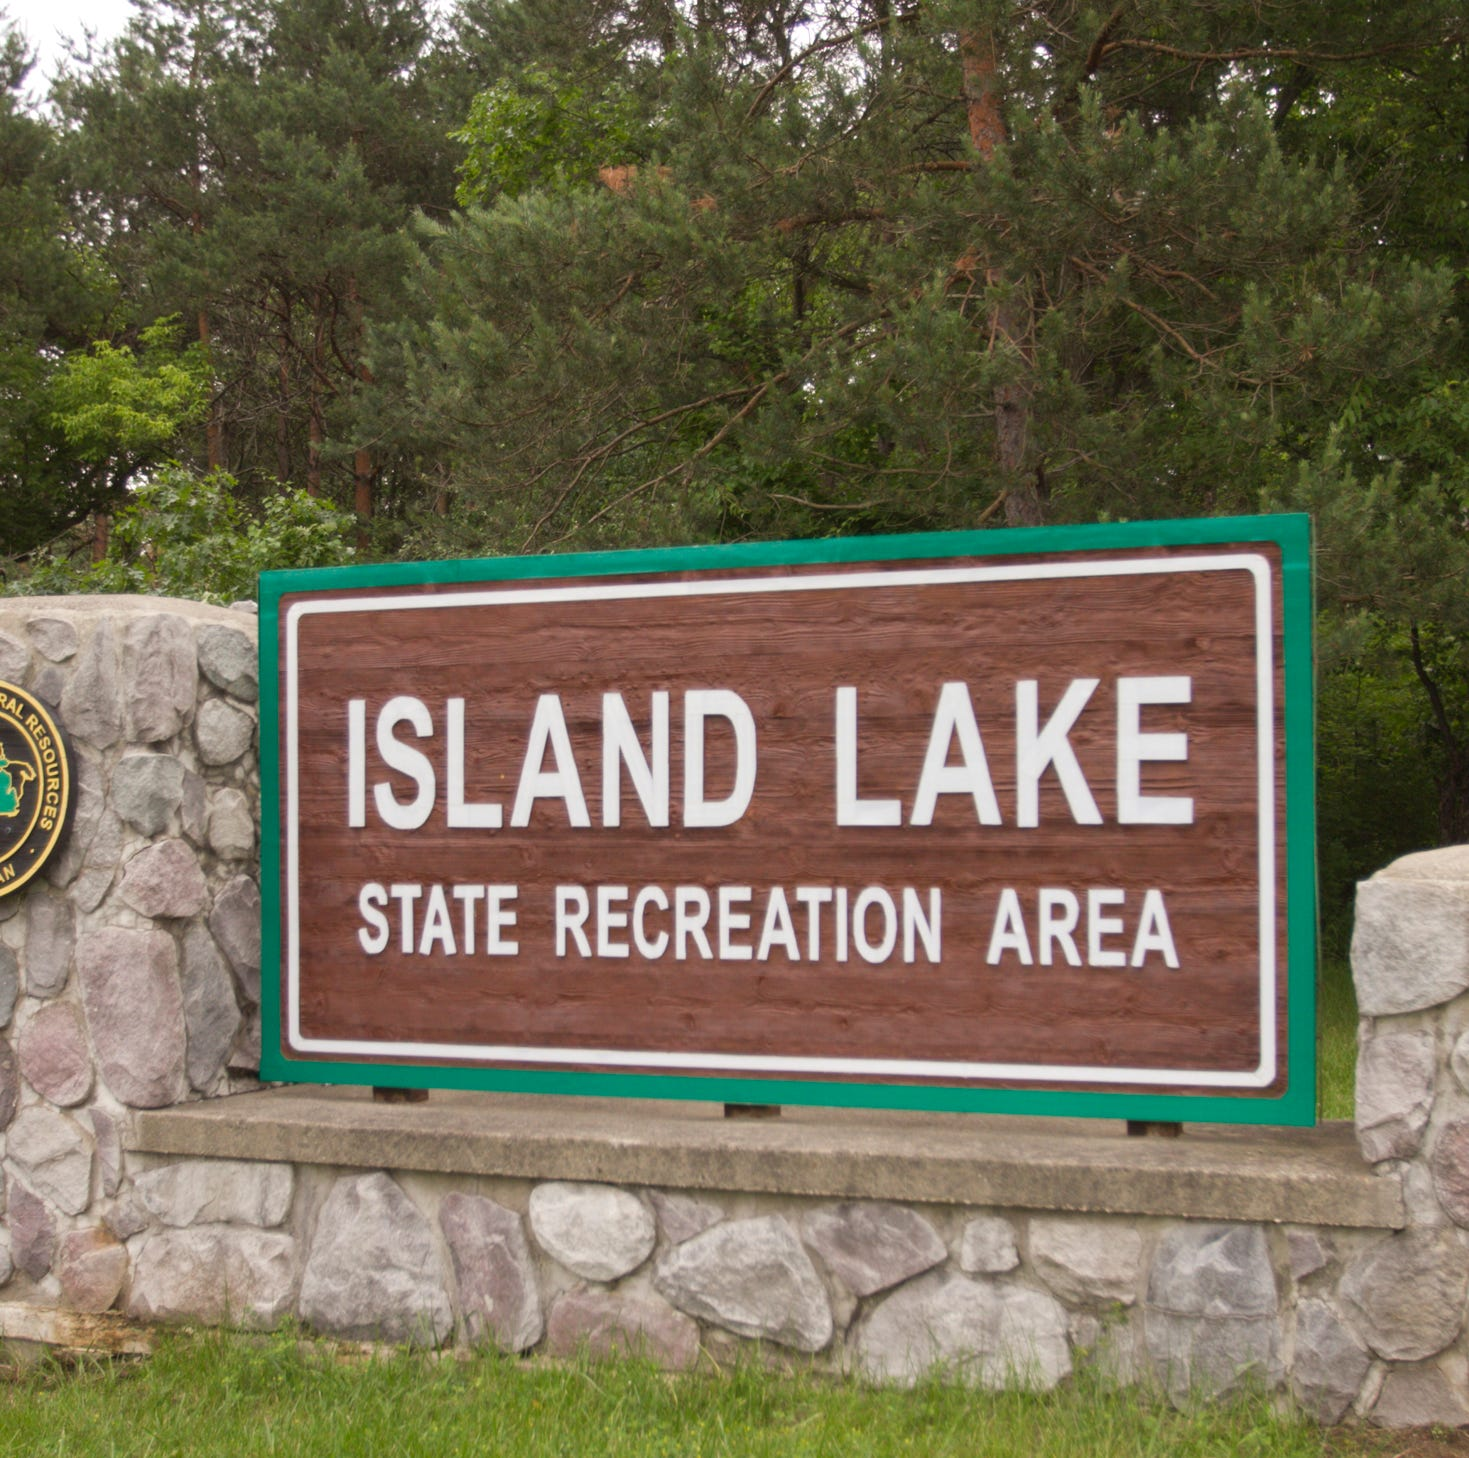 Brighton Township man dies after car-bike crash at Island Lake Recreation Area